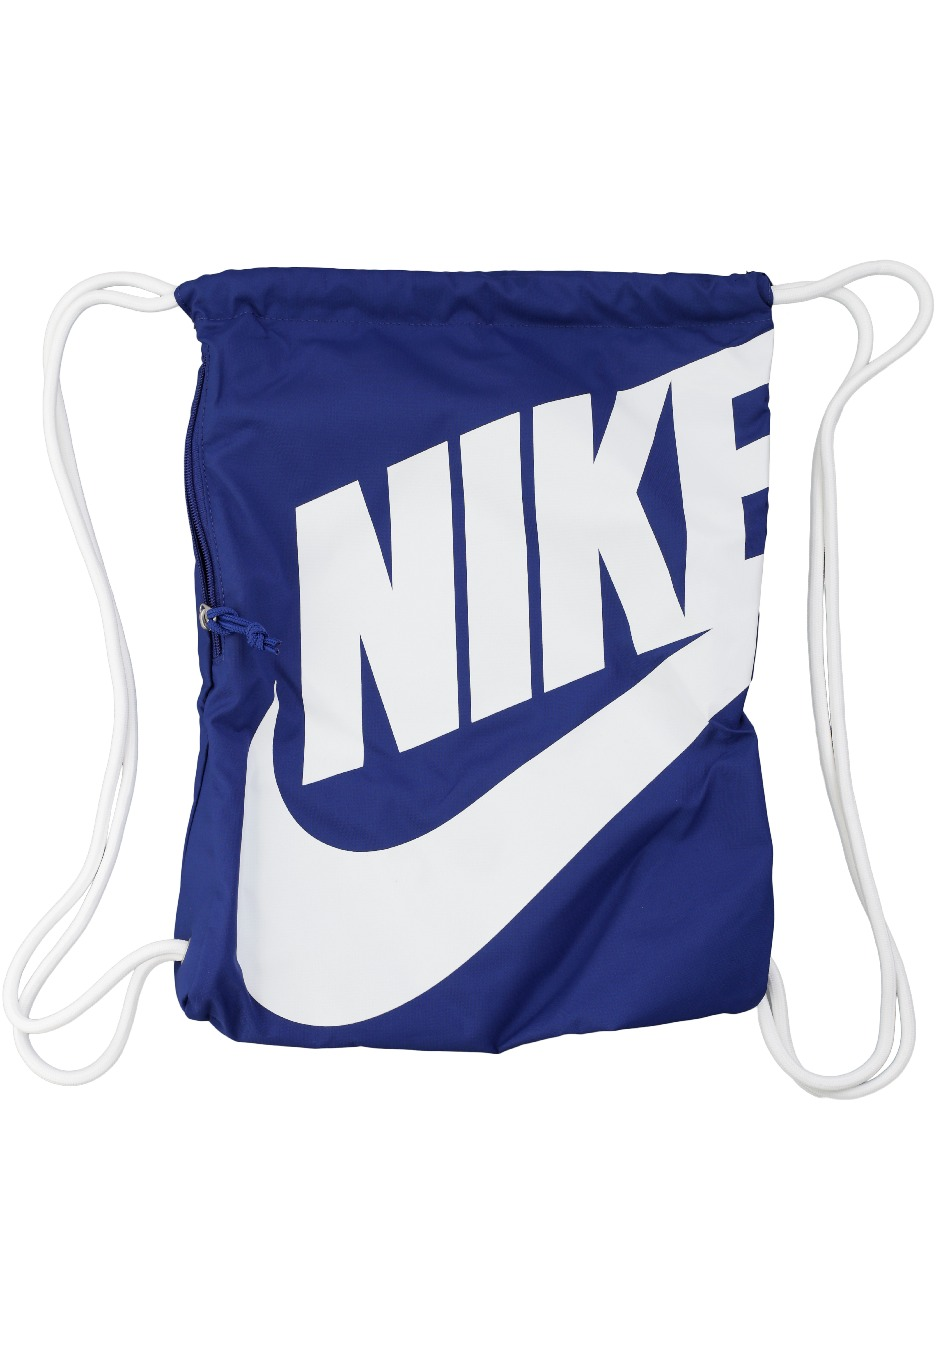 be946c24b Nike - Heritage Gymsack Deep Royal Blue/White - Backpack - Streetwear Shop  - Impericon.com UK